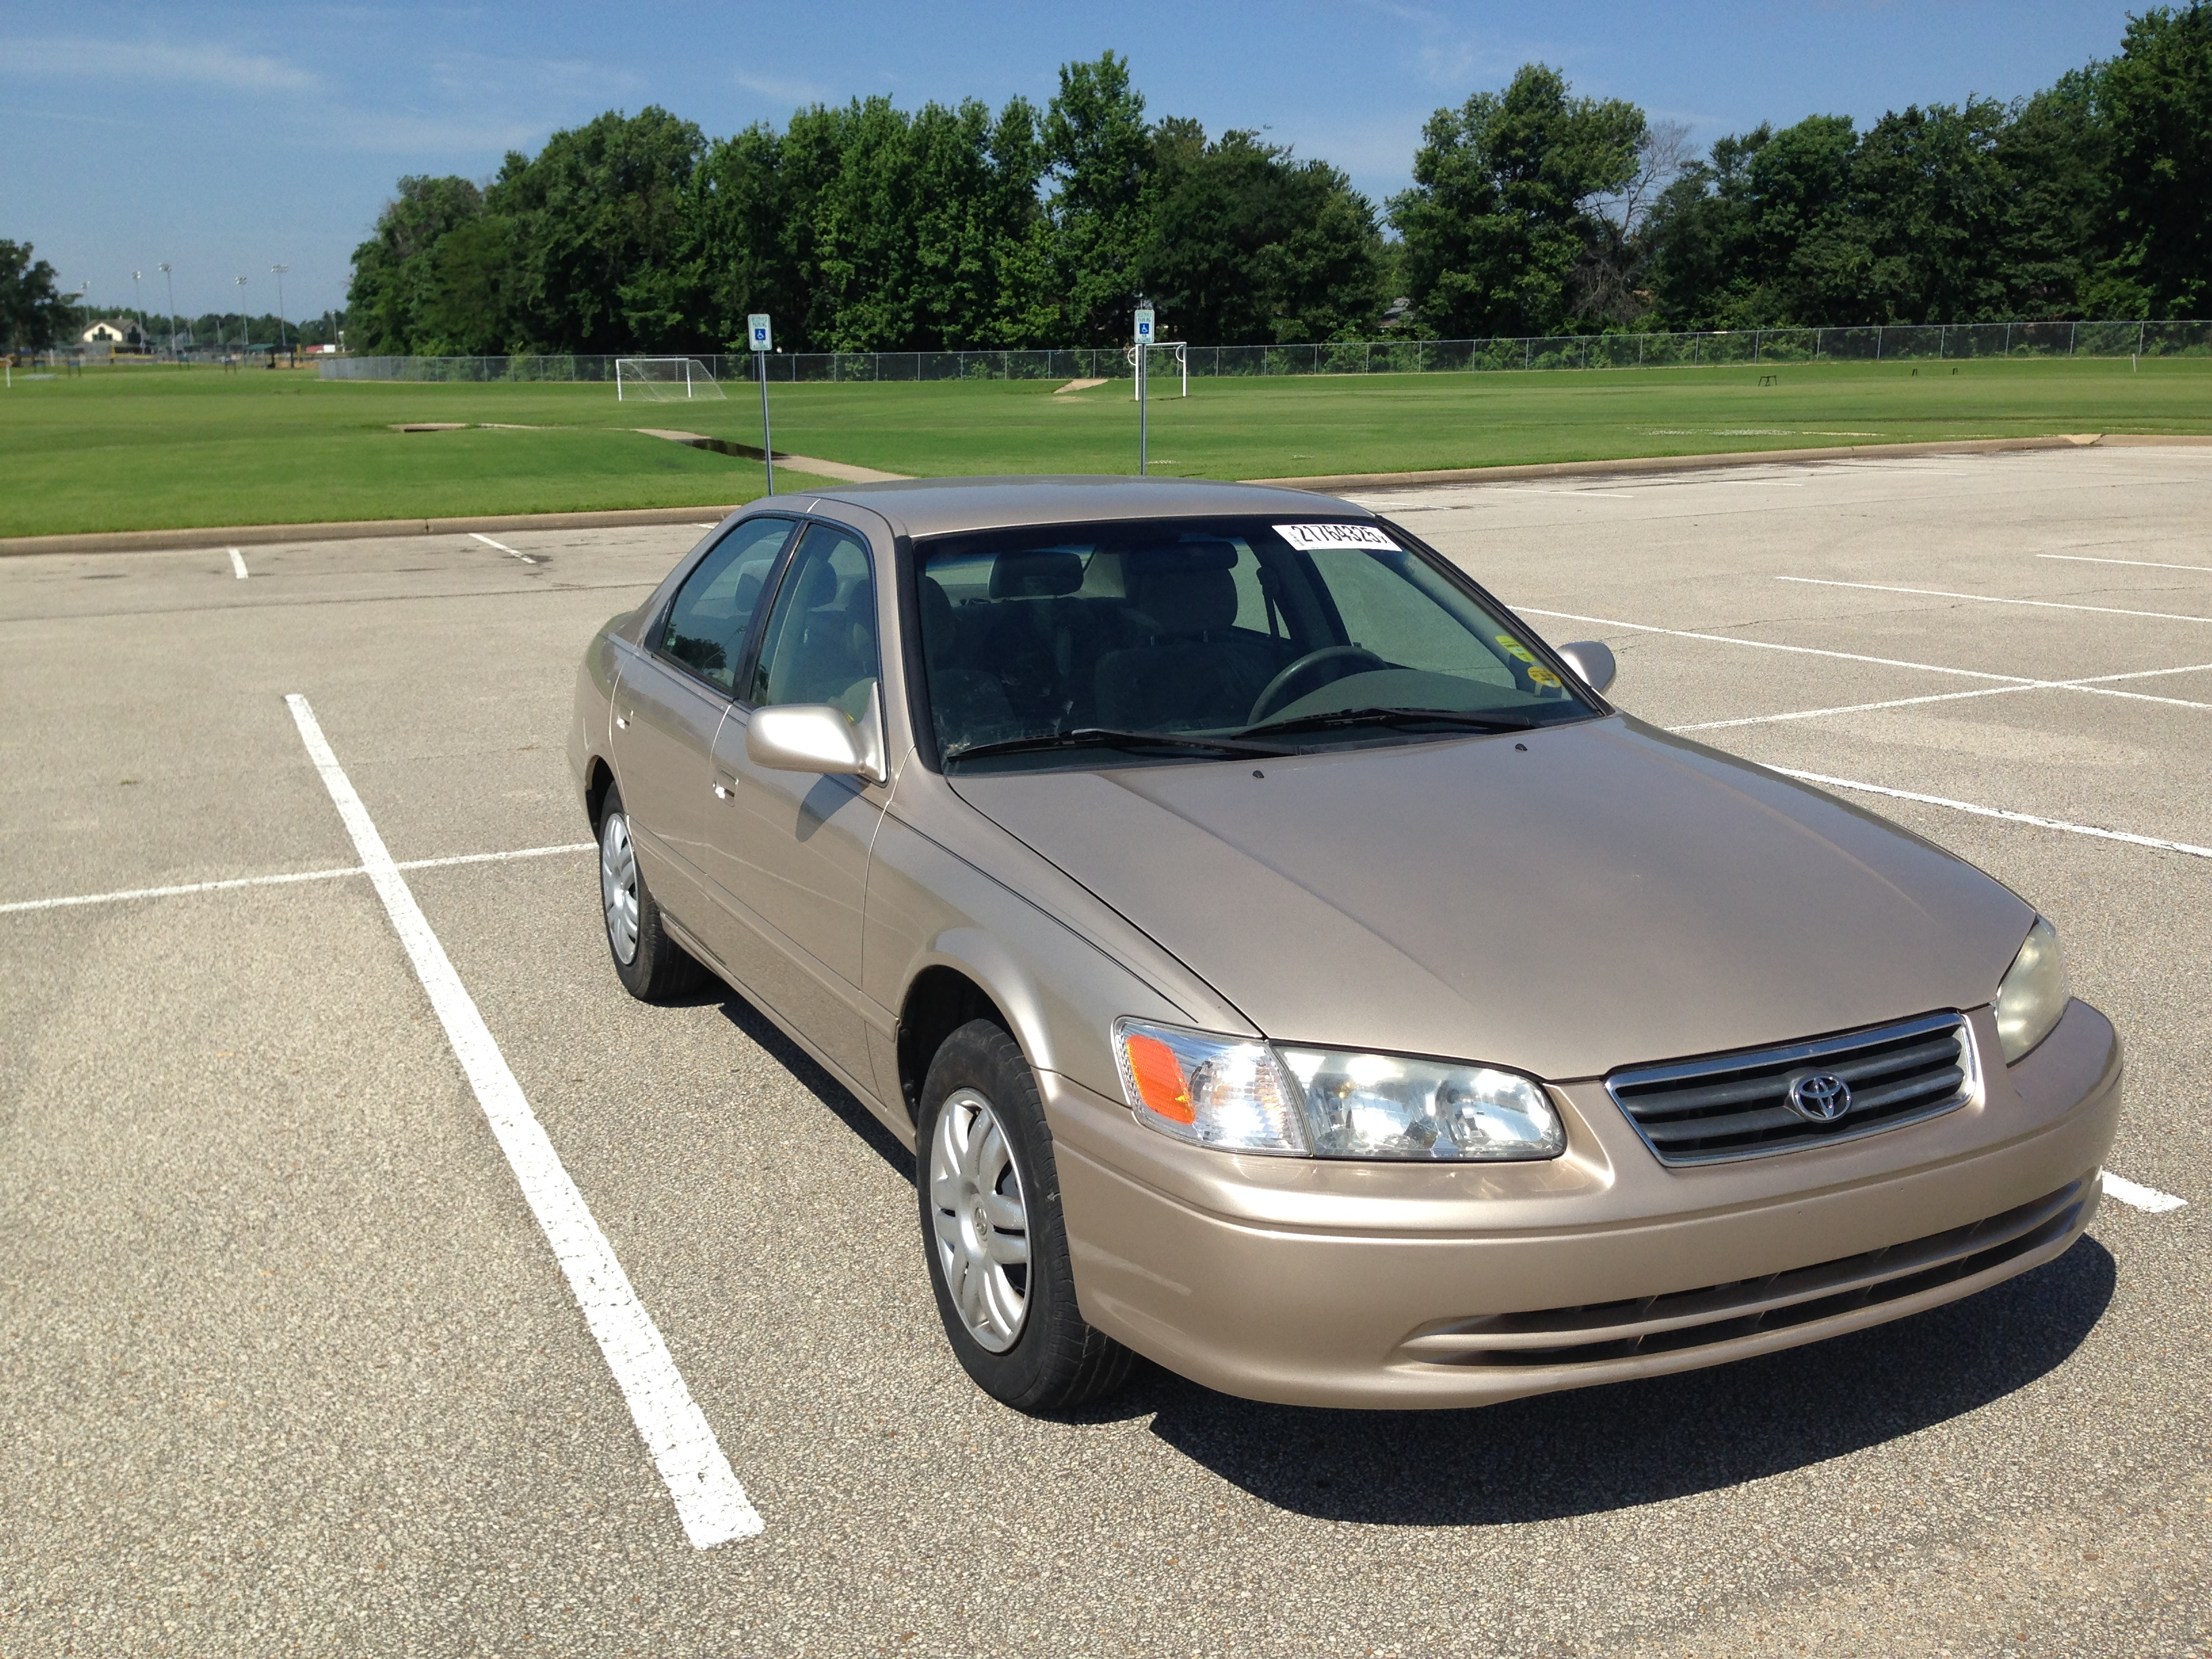 Gold Toyota Camry SOLD J L Auto Sales - 2001 camry